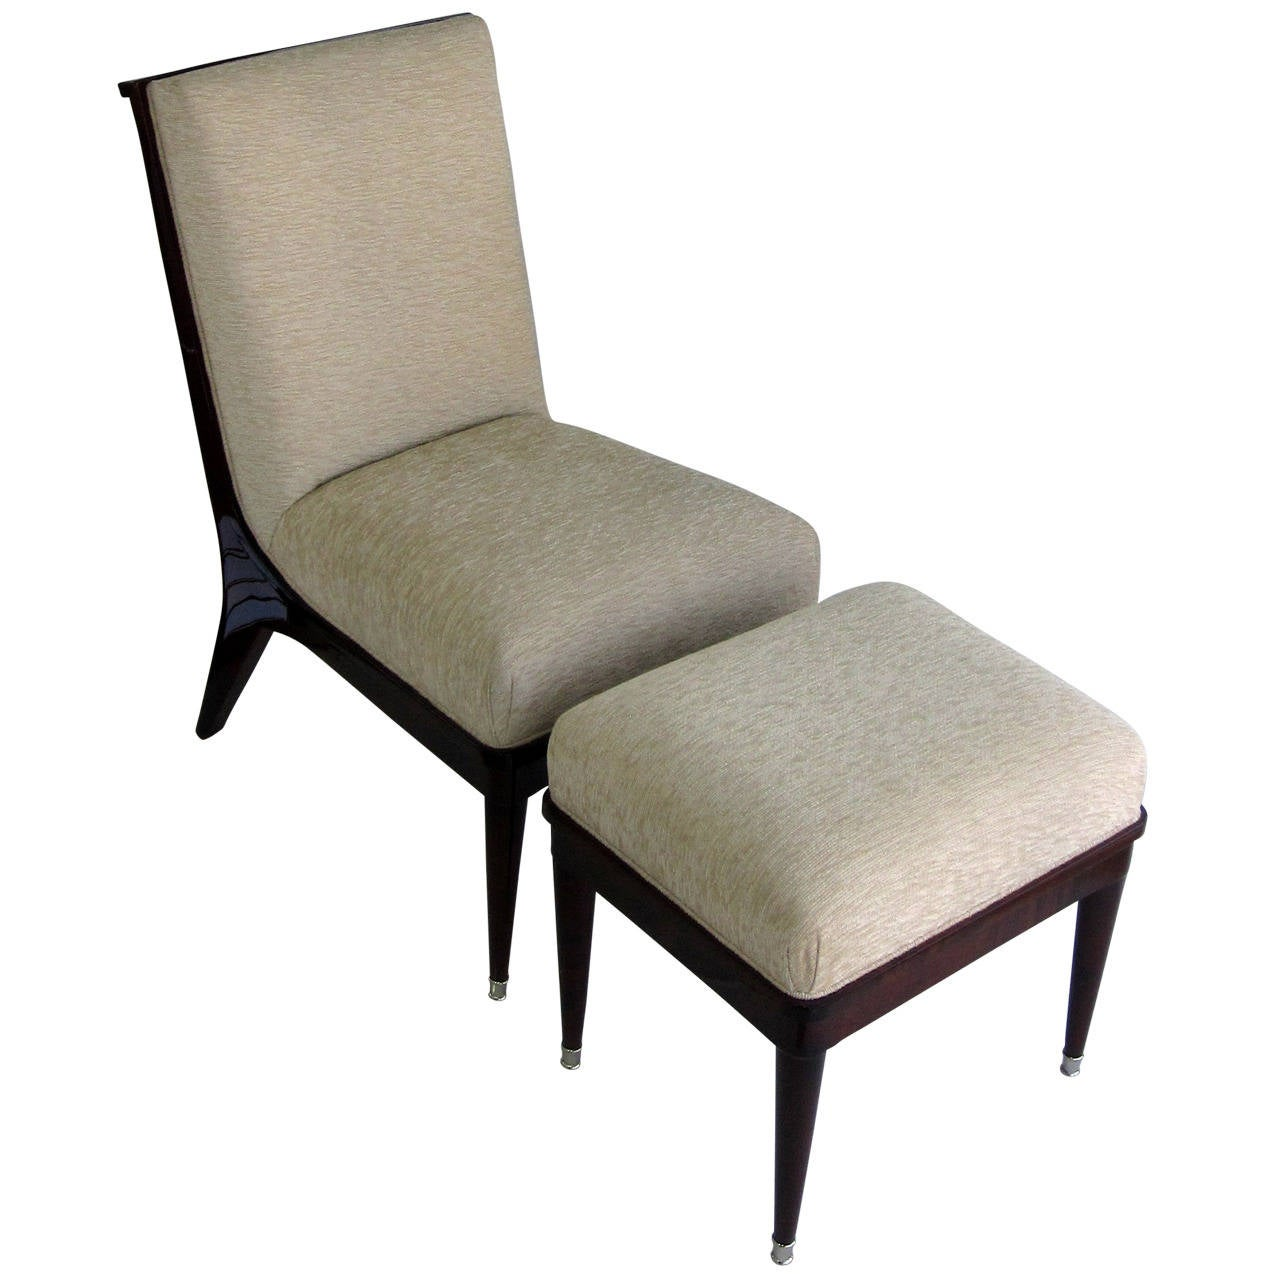 Maurice Jallot French Art Deco Chair And Ottoman Set For